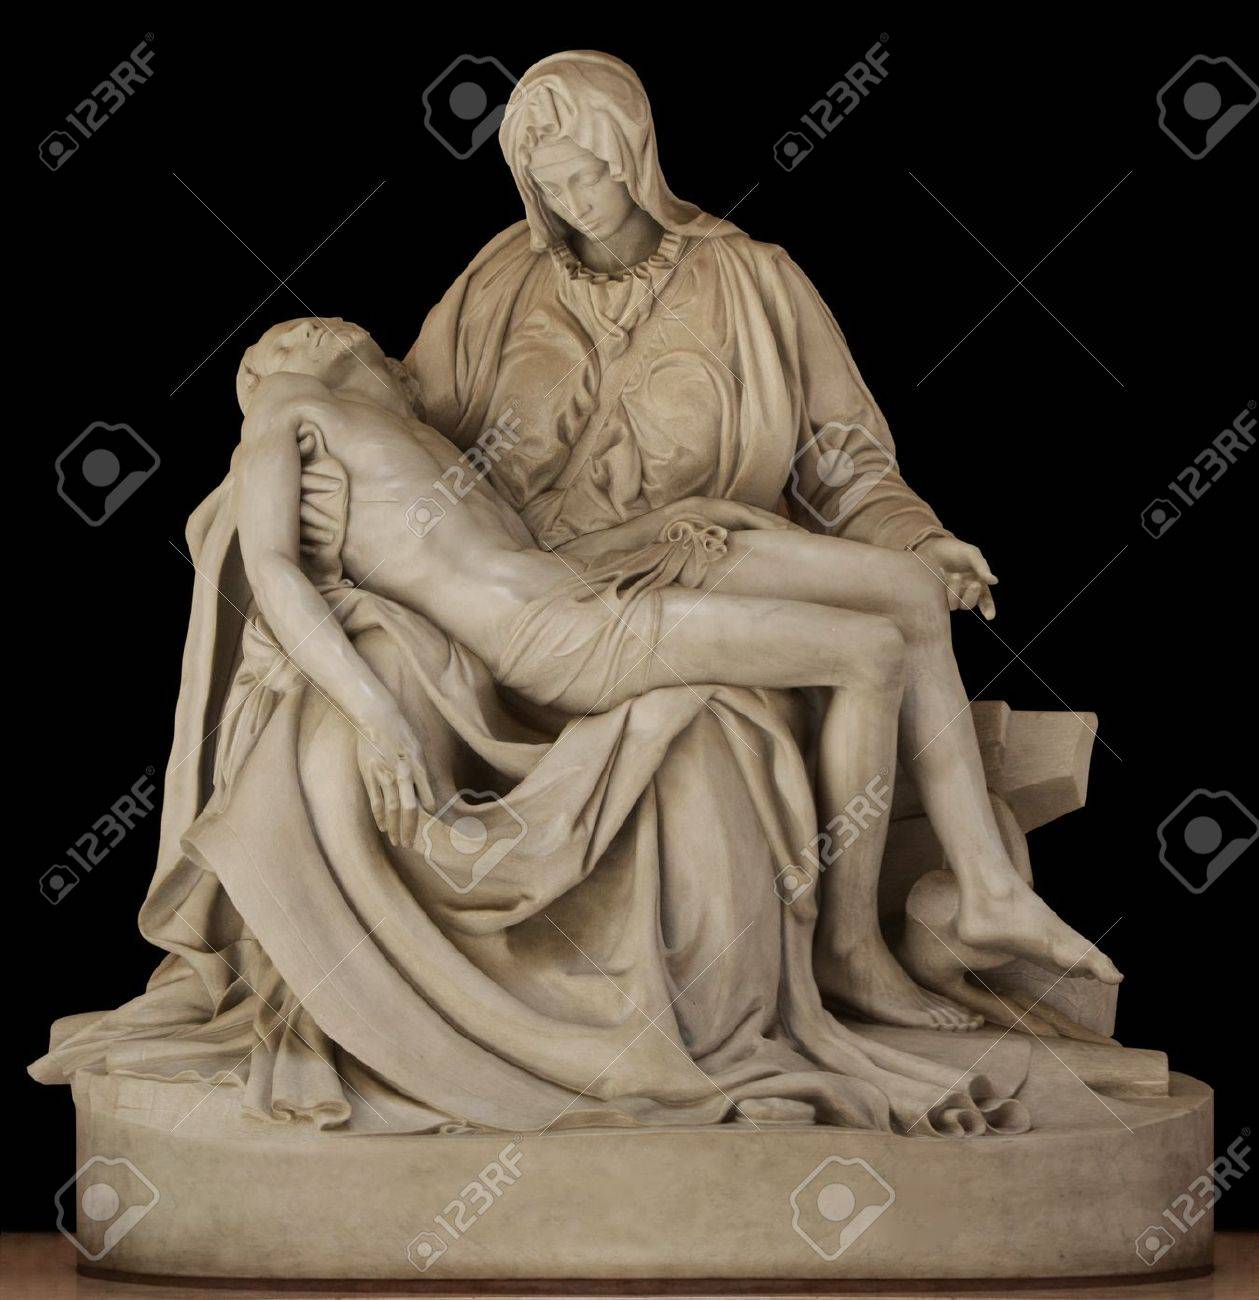 Statue of Mary holding the body of Jesus by Michael Angelo Stock Photo - 15440326